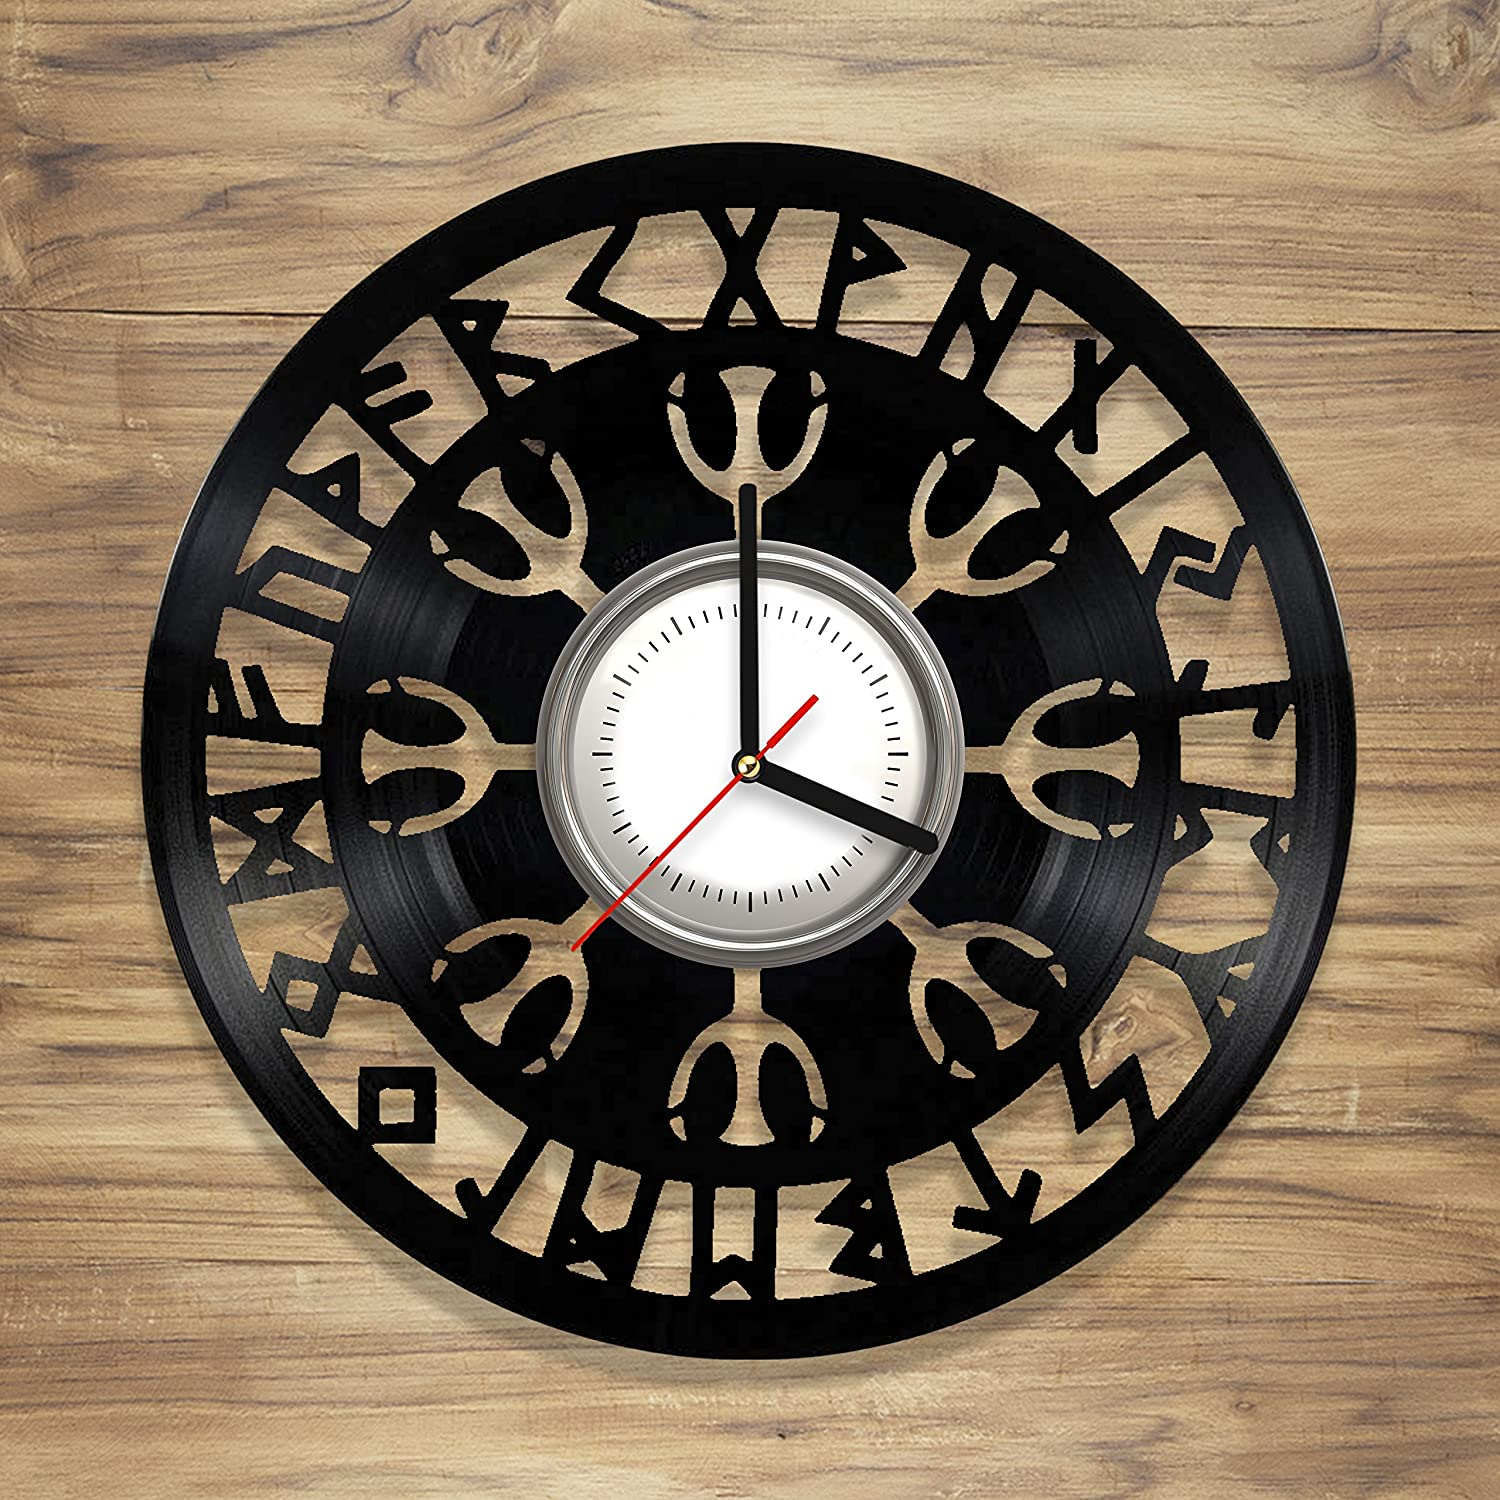 Viking Symbols Vinyl Wall Clock Norse Symbols Vegvisir Compass Art Decorate Home Unique Gift idea for Him Her (12 inches) (One Pack)